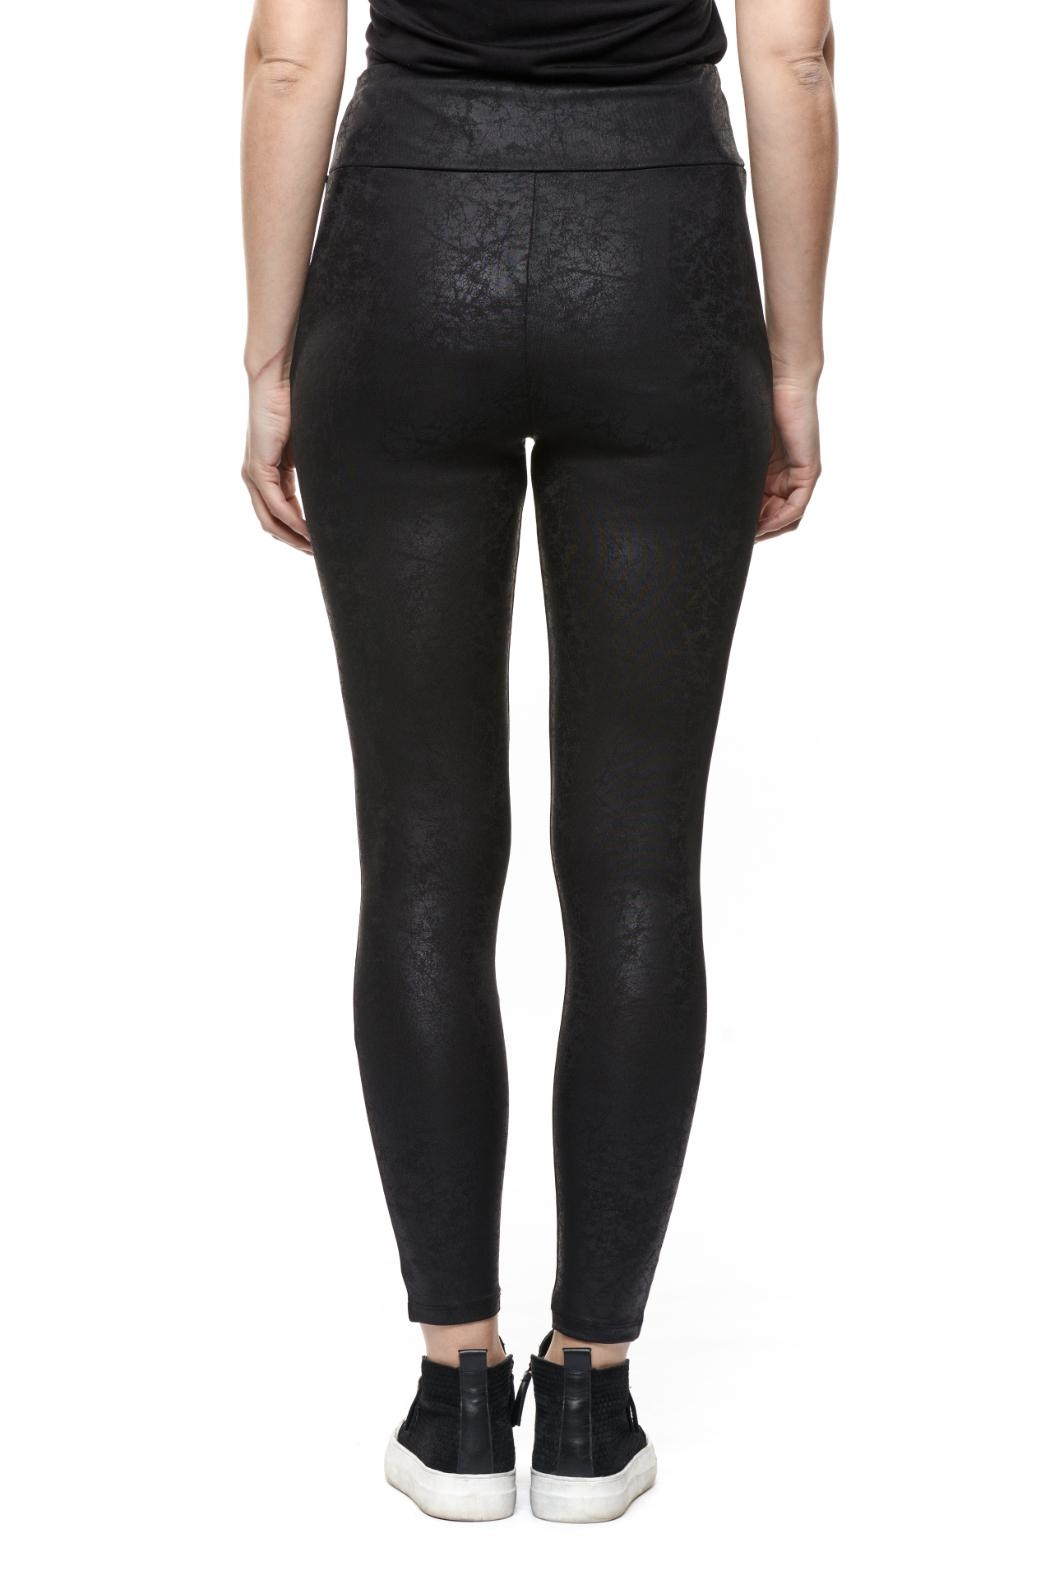 Dex Coated Faux-Leather Legging - Front Full Image